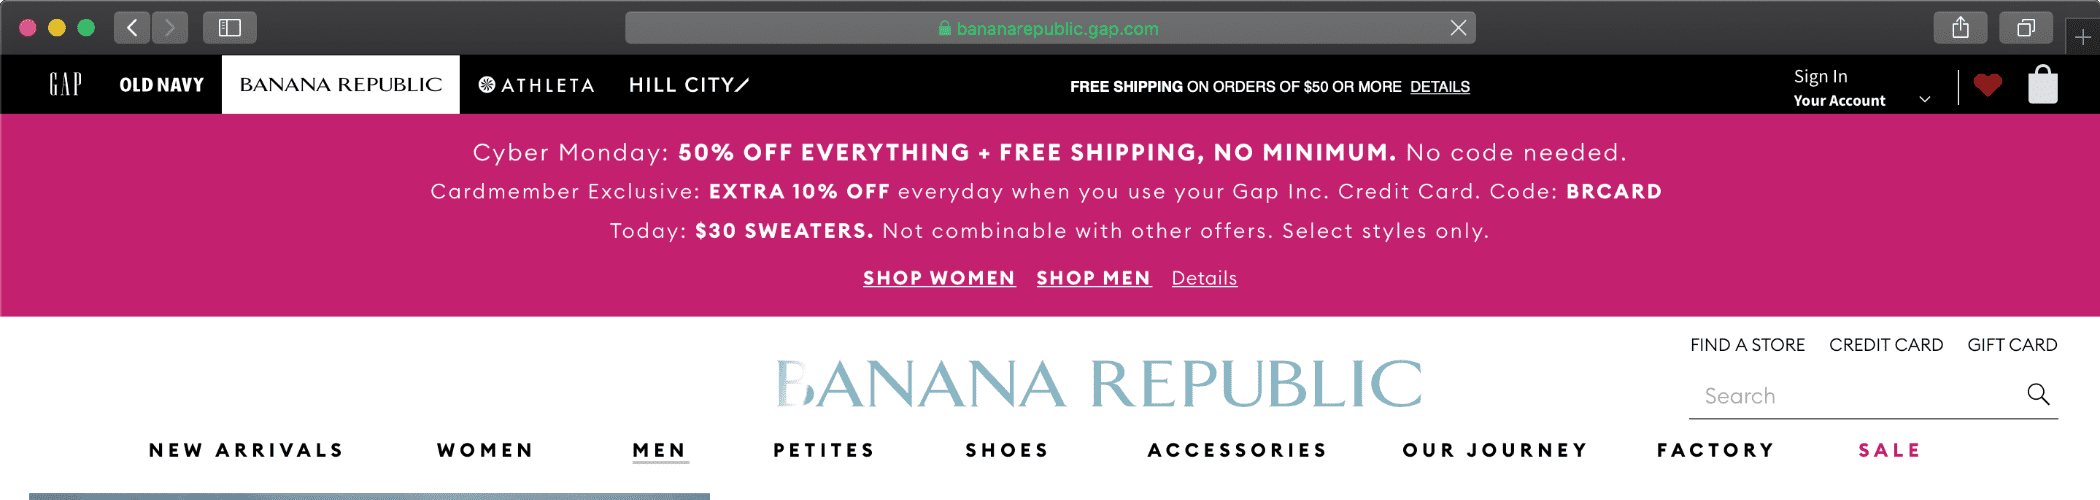 CLICK IMAGE TO BROWSE BANANA REPUBLIC CYBER MONDAY DEALS